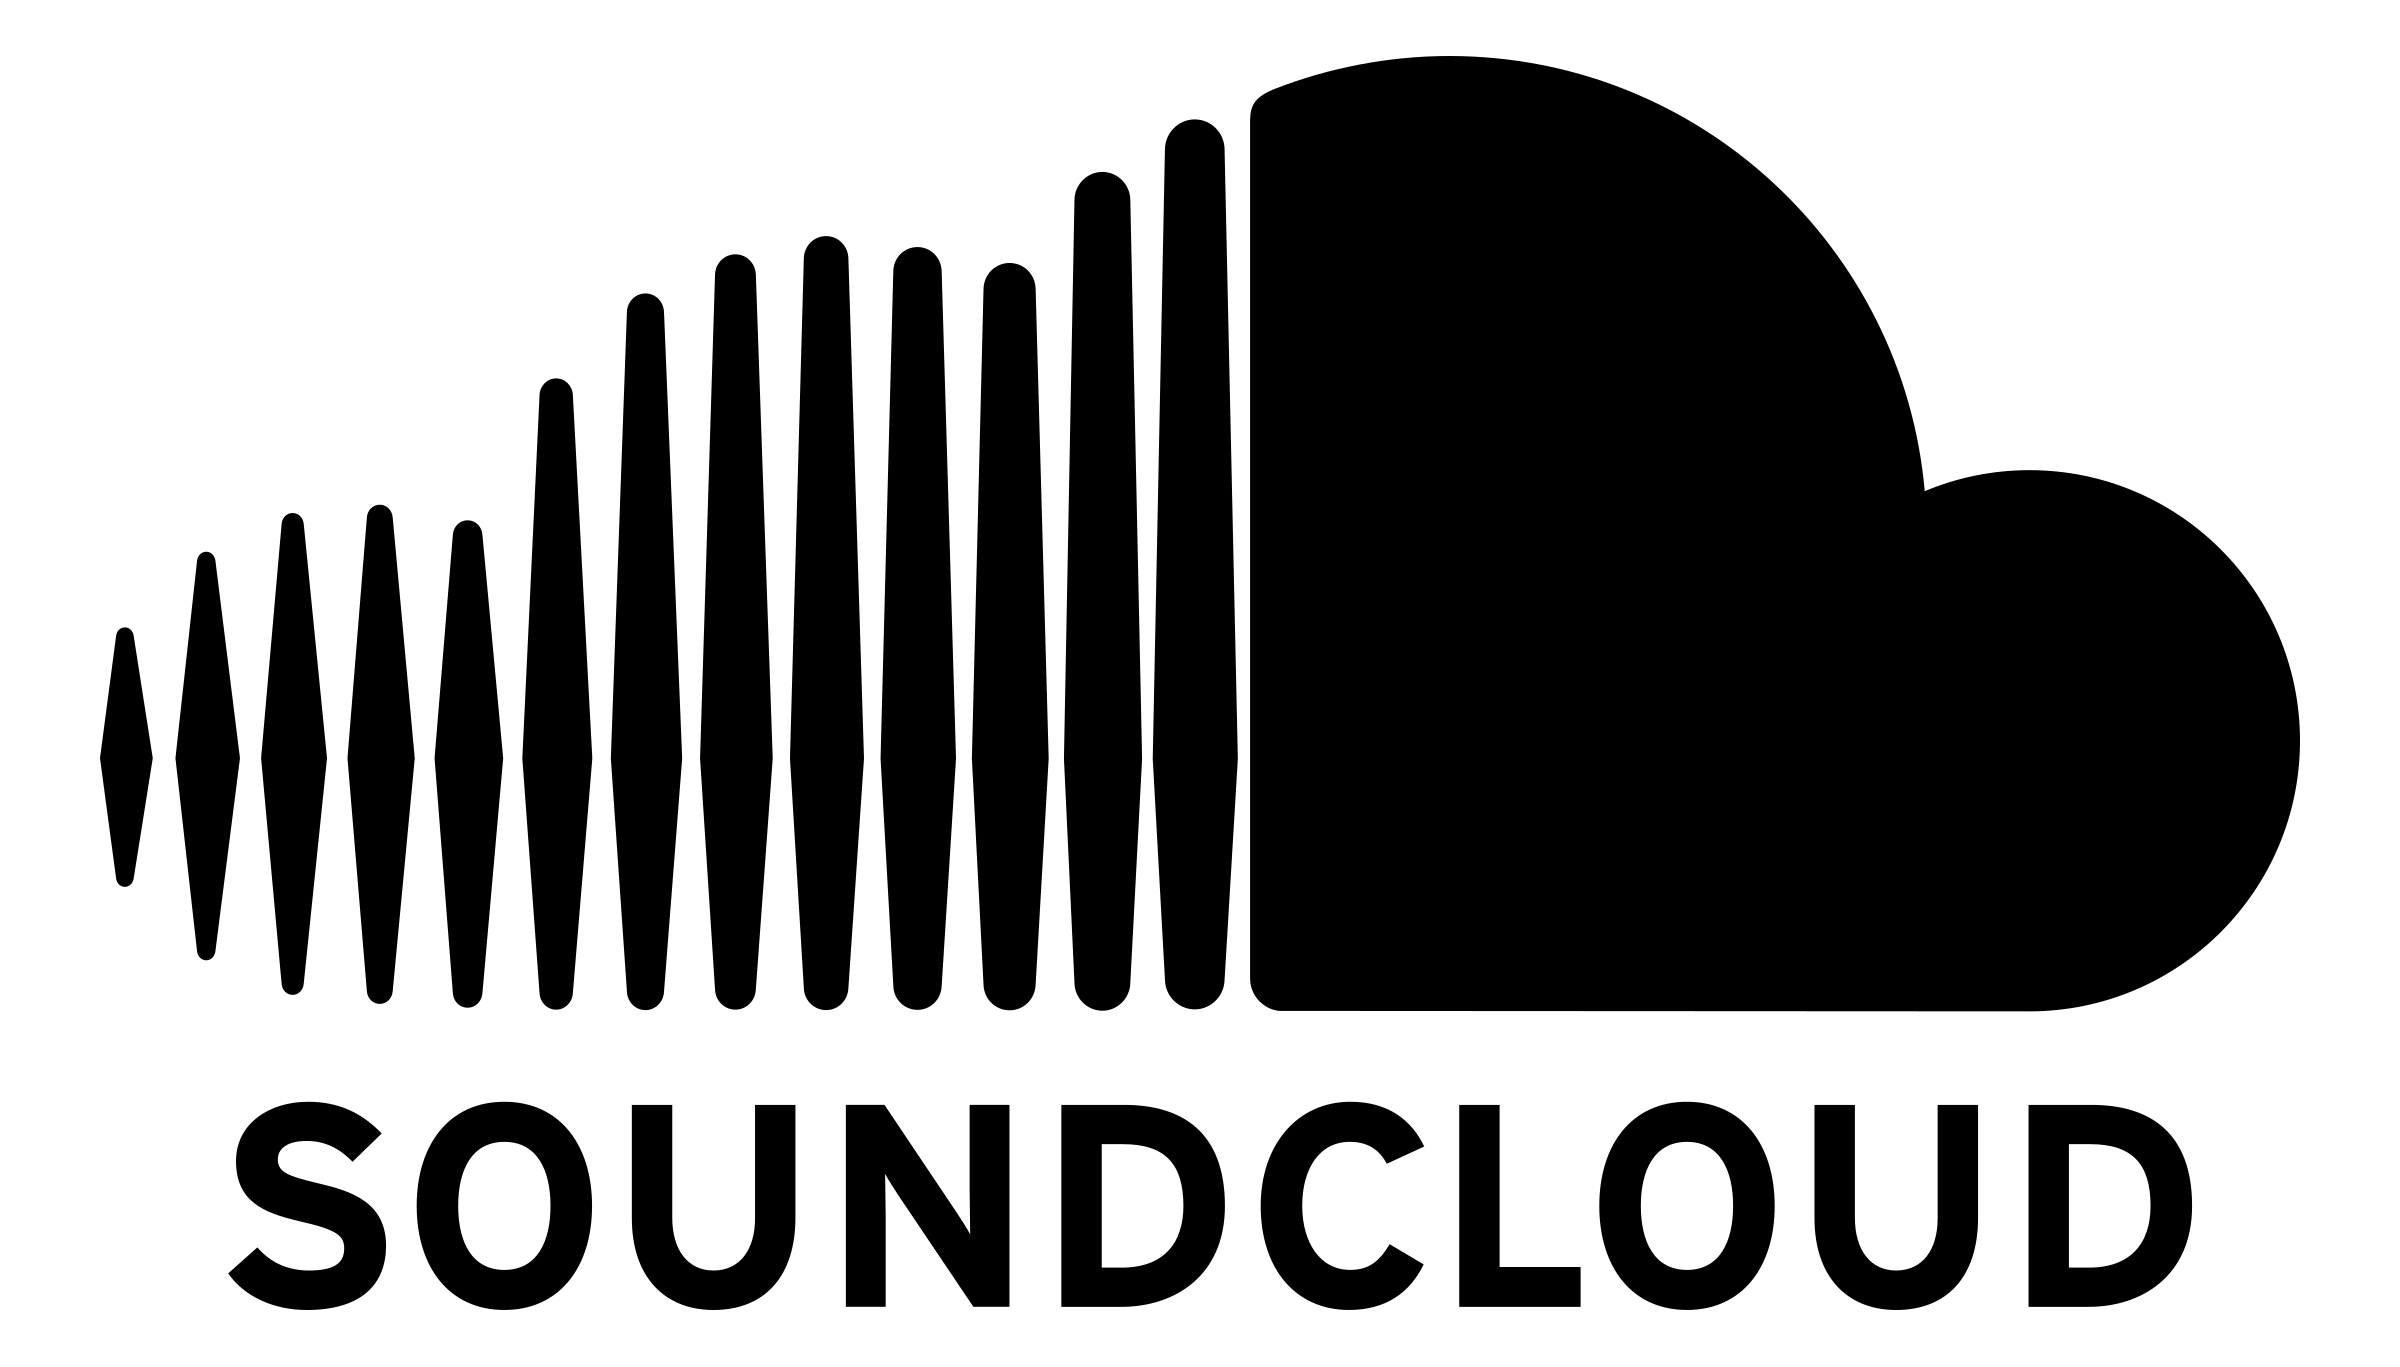 Soundcloud logo png. Transparent svg vector freebie